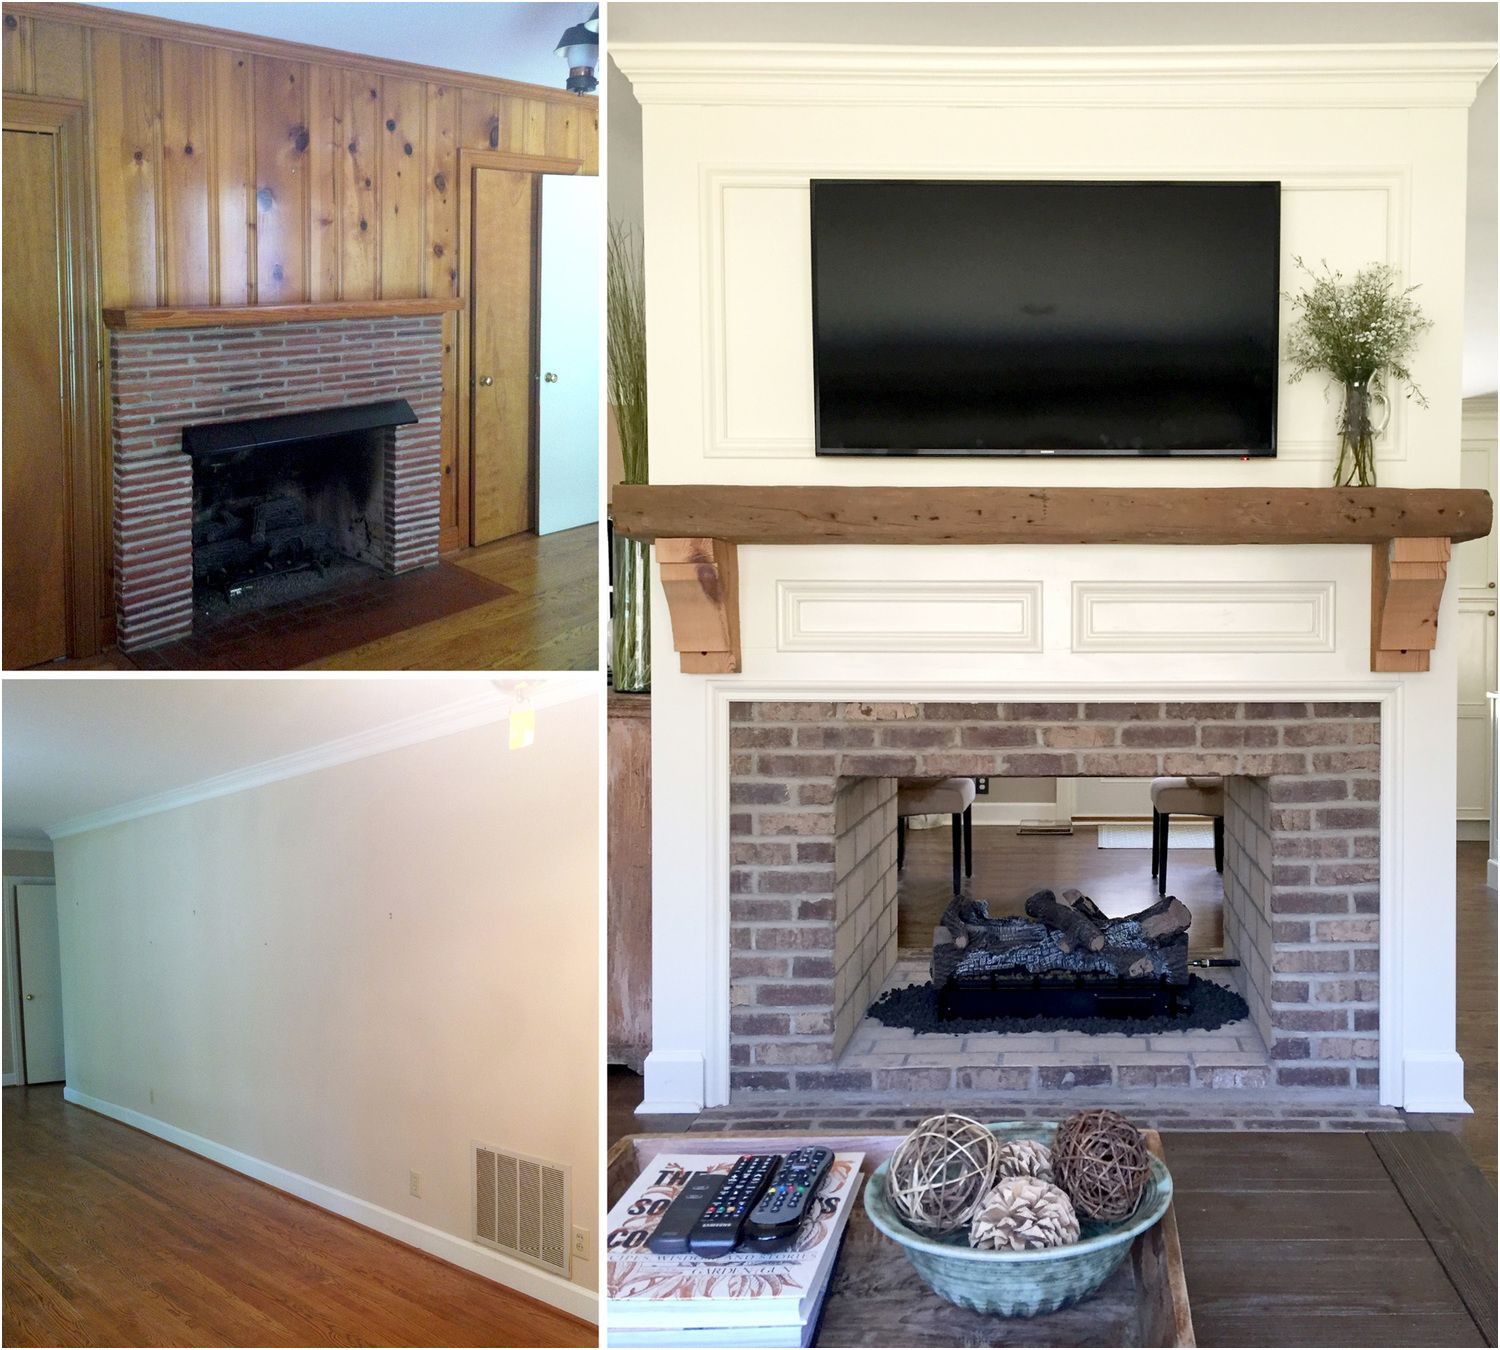 Fireplace Remodels Best Of Fireplace Renovation Converting A Single Sided Fireplace to